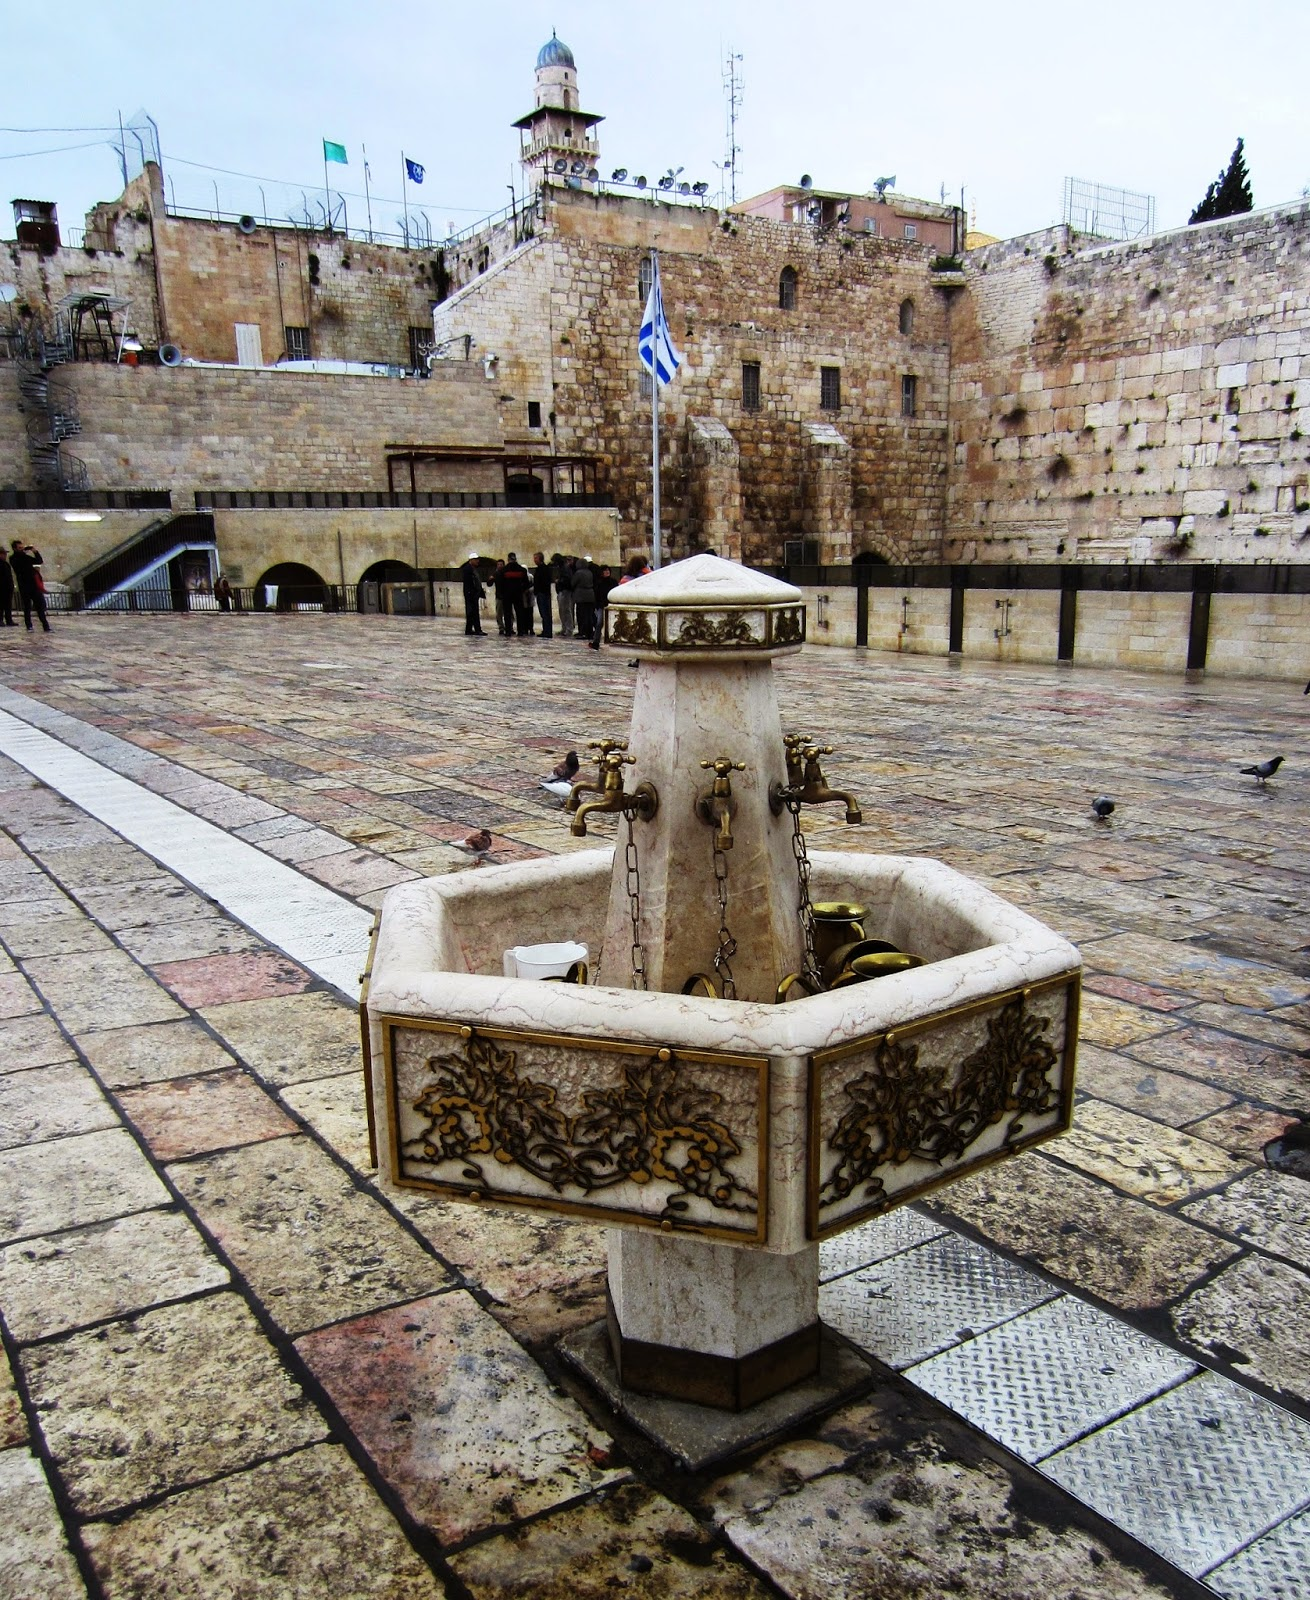 Washing station, Western Wall Plaza, Jerusalem / Souvenir Chronicles